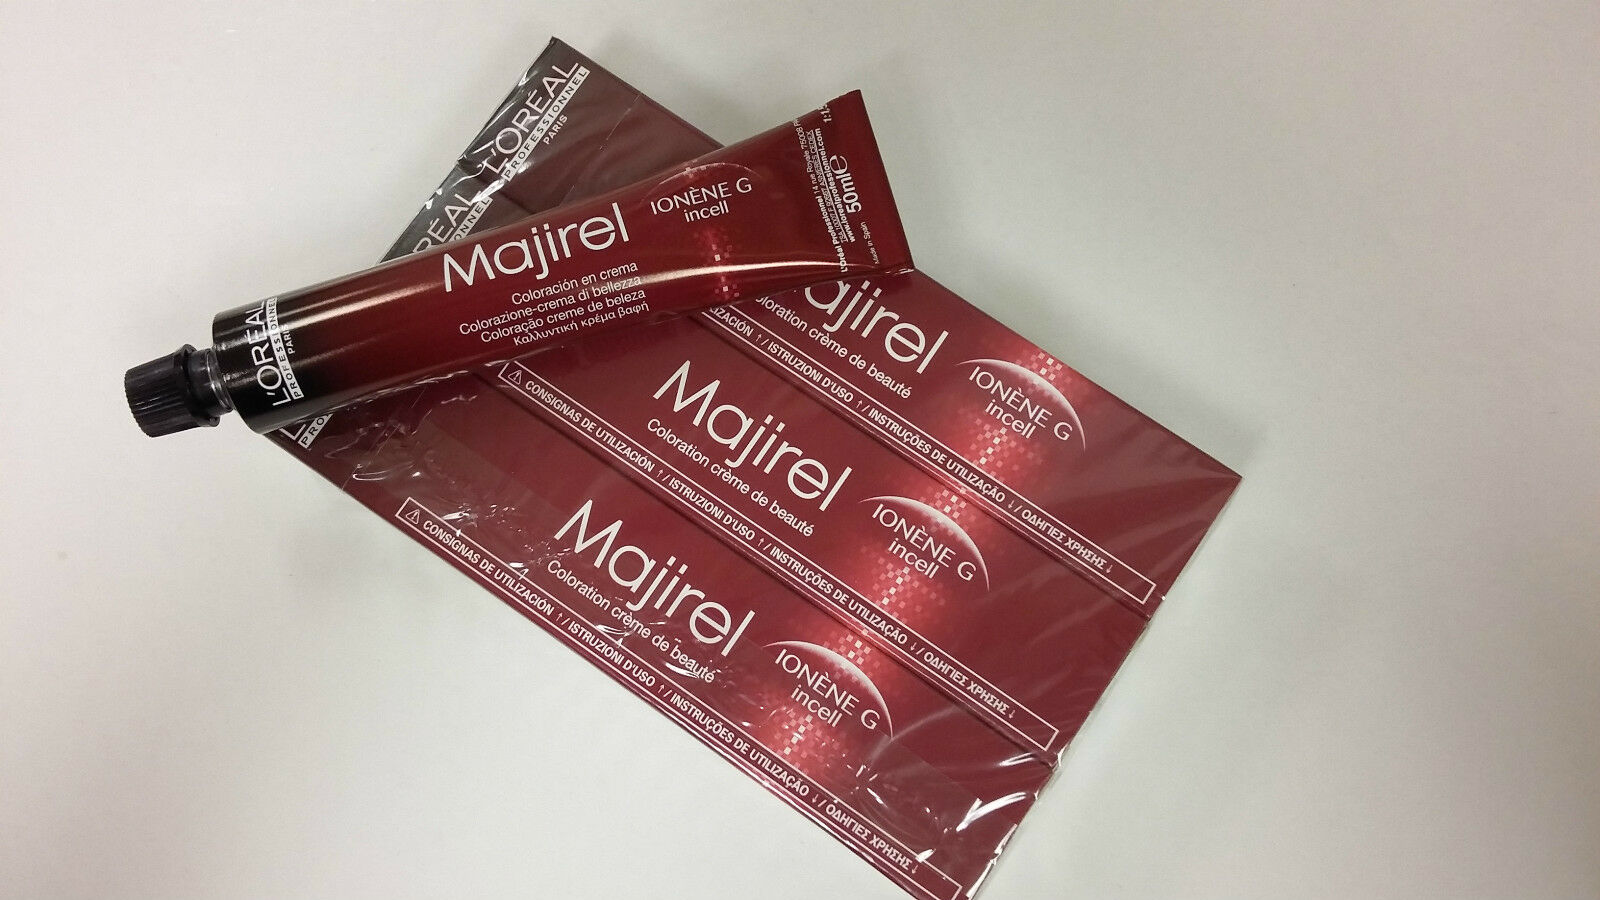 Loreal Professional Majirel And Majiblond 50ml Tube X 3 Free Majirouge Beauty Colouring Cream 1 Of 1free Shipping